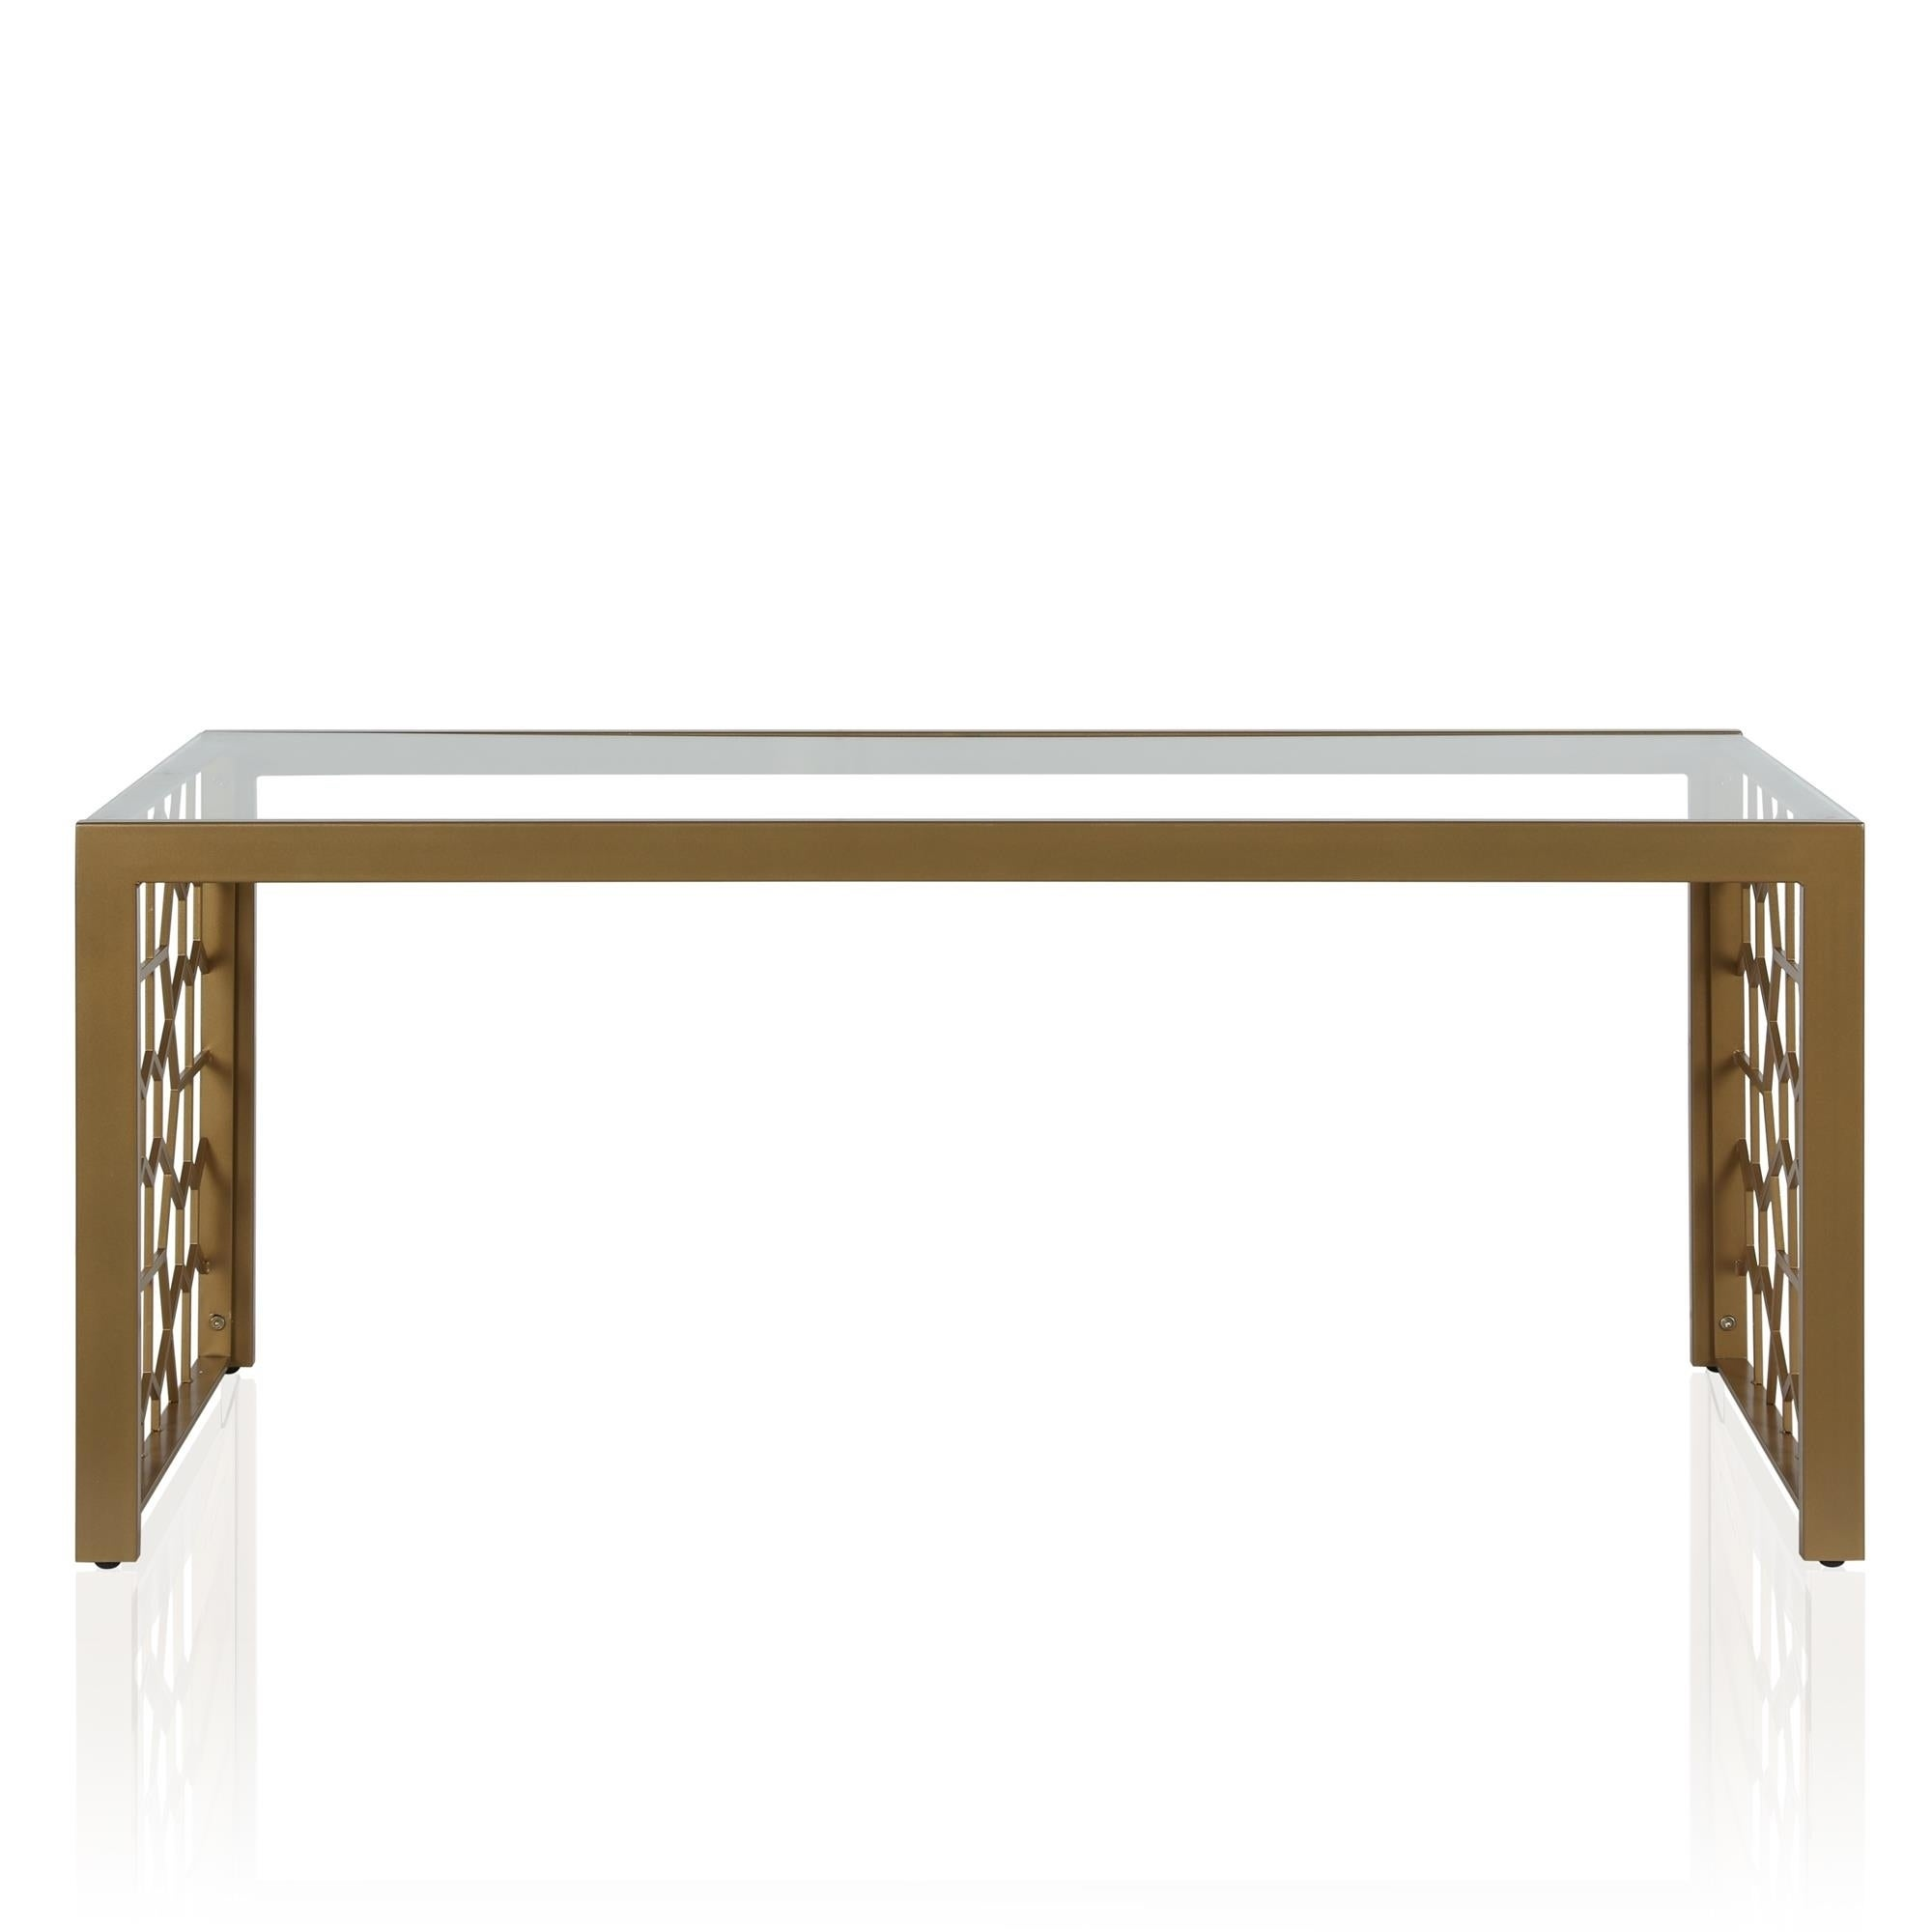 Shop CosmoLiving By Cosmopolitan Juliette Soft Brass Glass Top Coffee Table    Free Shipping Today   Overstock   26057083